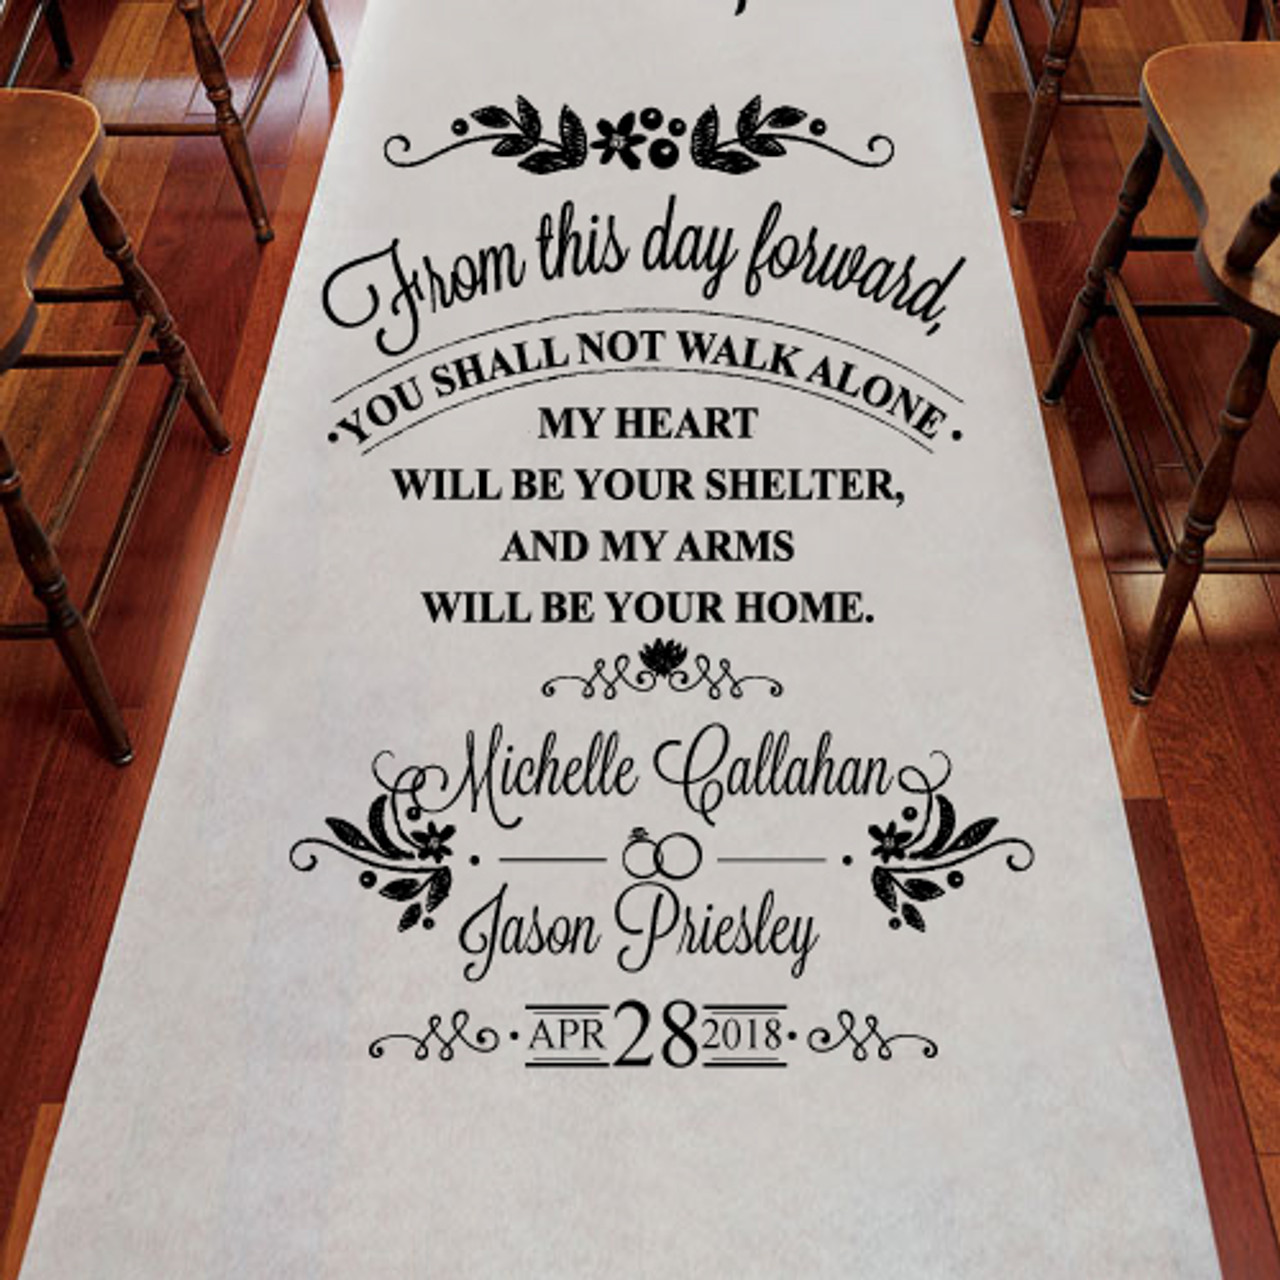 From This Day Forward Personalized Wedding Aisle Runner Favors Flowers